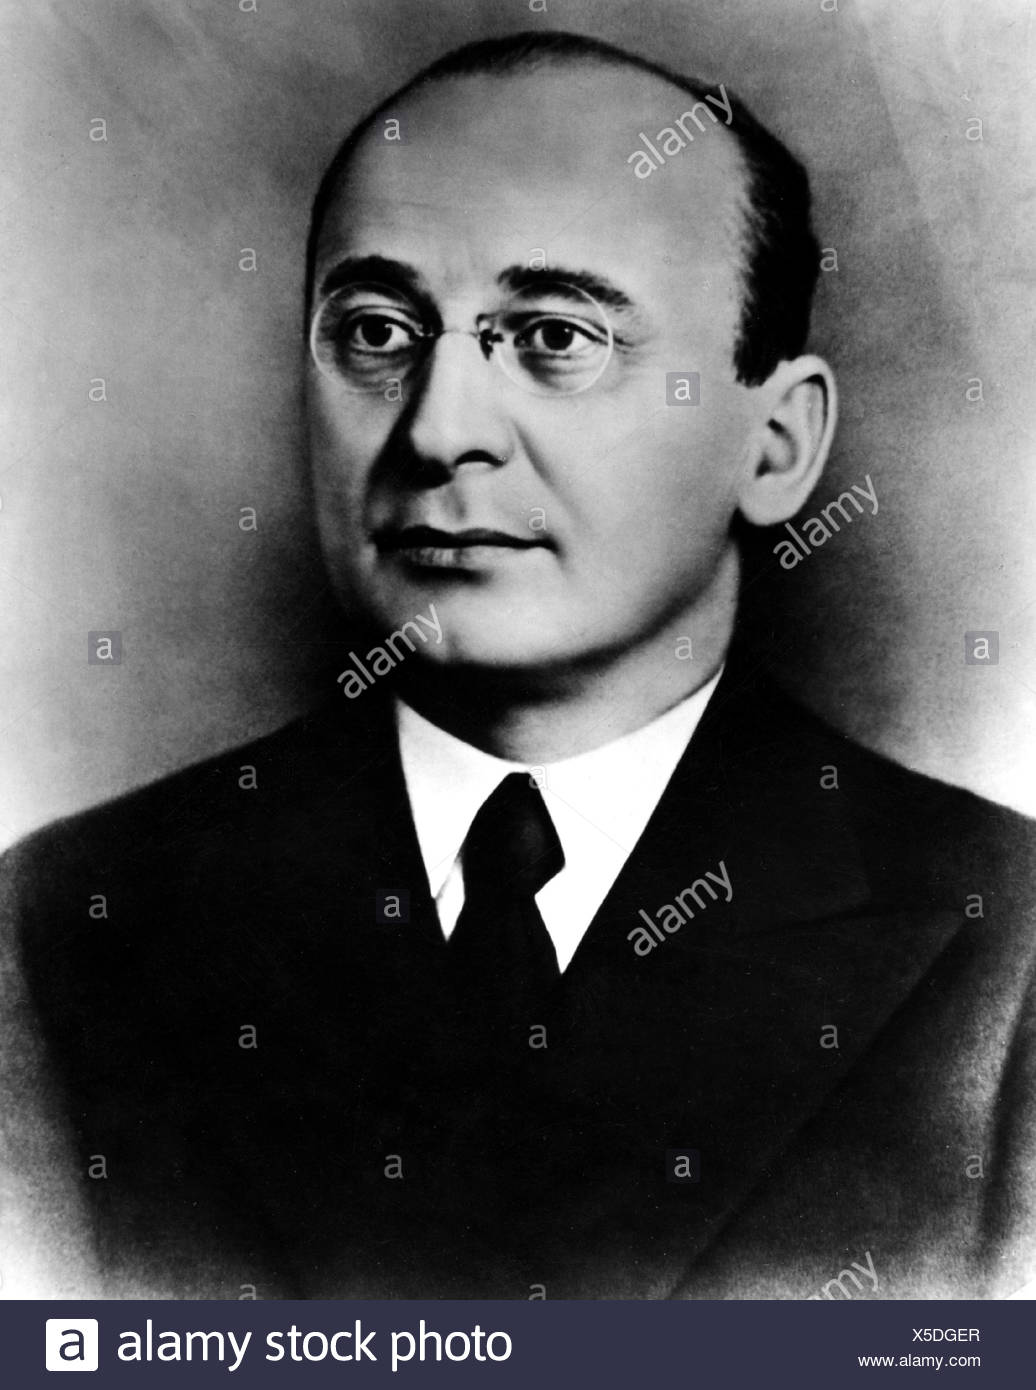 Beria, Lavrentiy, 29.3.1899 - 23.12.1953, Soviet politician, deputy head of the People's Commissariat for Internal Affairs, portrait, Additional-Rights-Clearances-NA - Stock Image